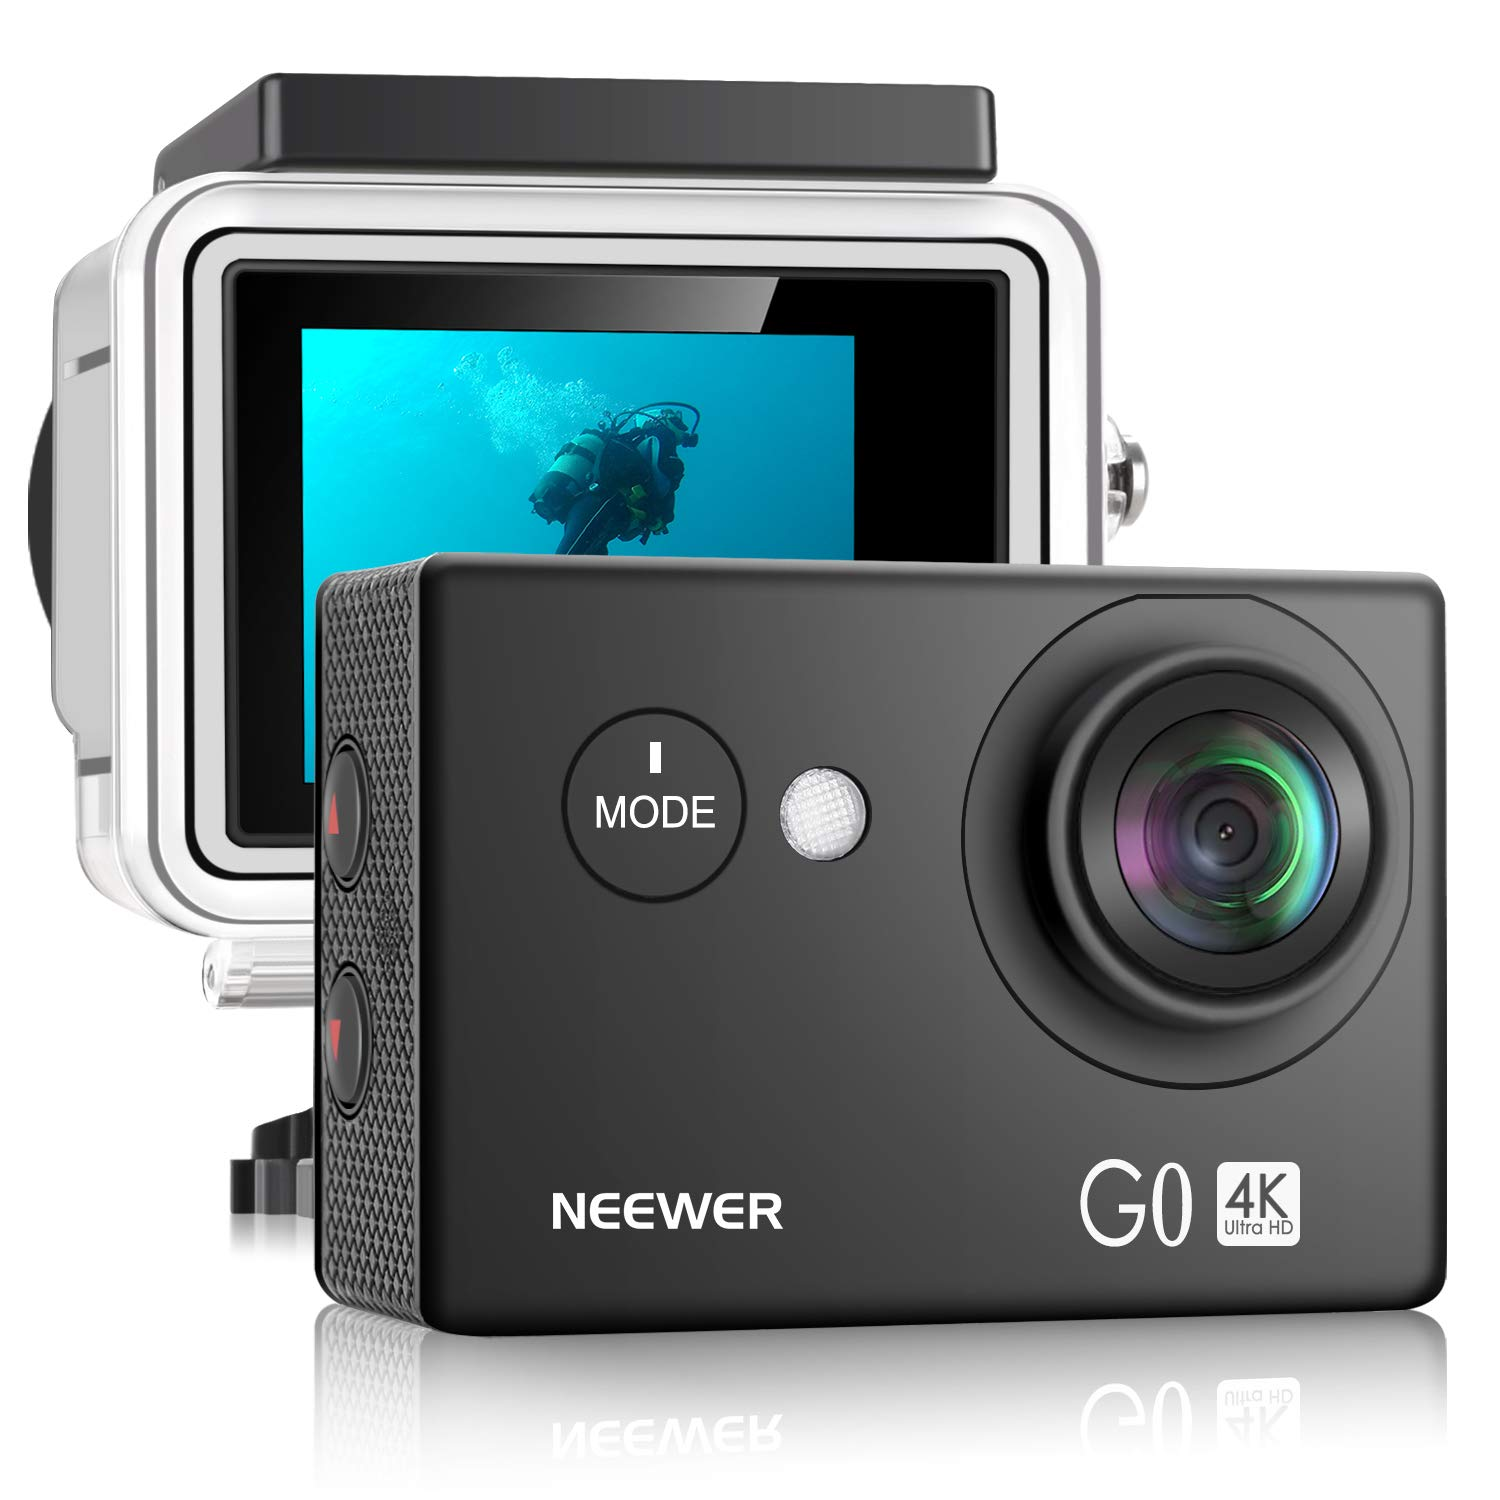 Neewer G0 HD 4K Action Camera 12MP, 98 ft Underwater Waterproof Camera: 170 Degree Wide Angle WiFi Sports Cam 2-inch Screen, Battery Mounting Accessories Kit (Black) by Neewer